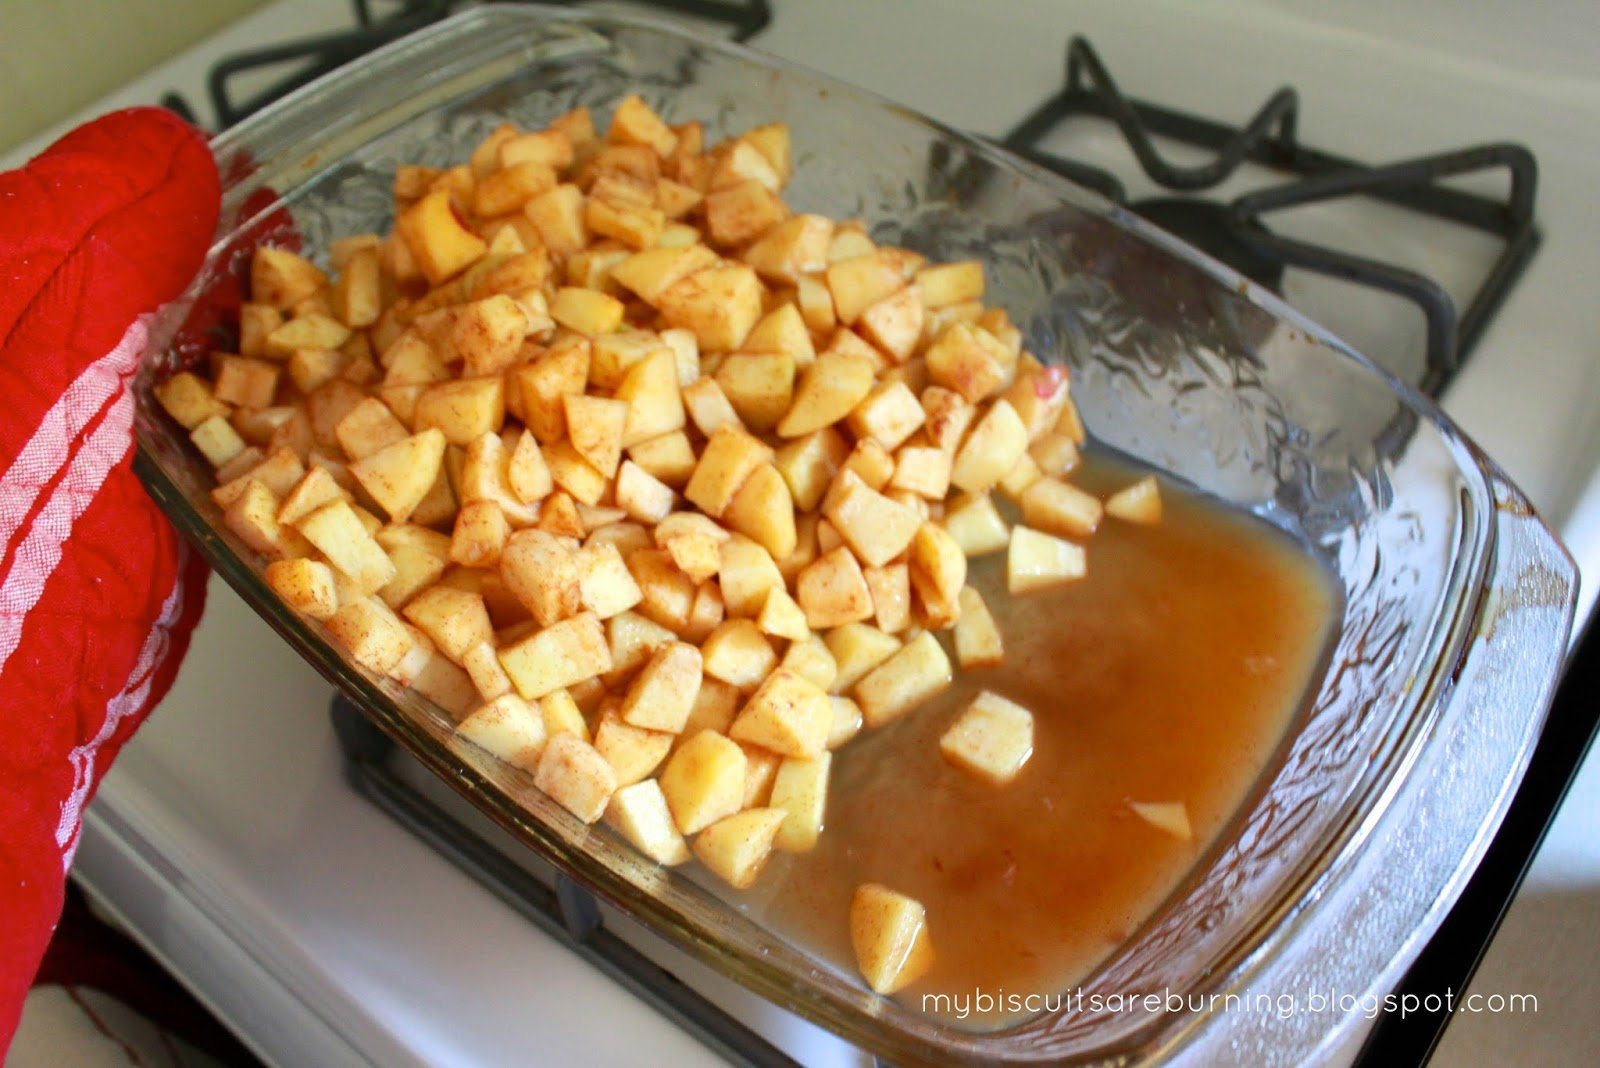 My Biscuits are Burning: Fresh Apple Dump Cake